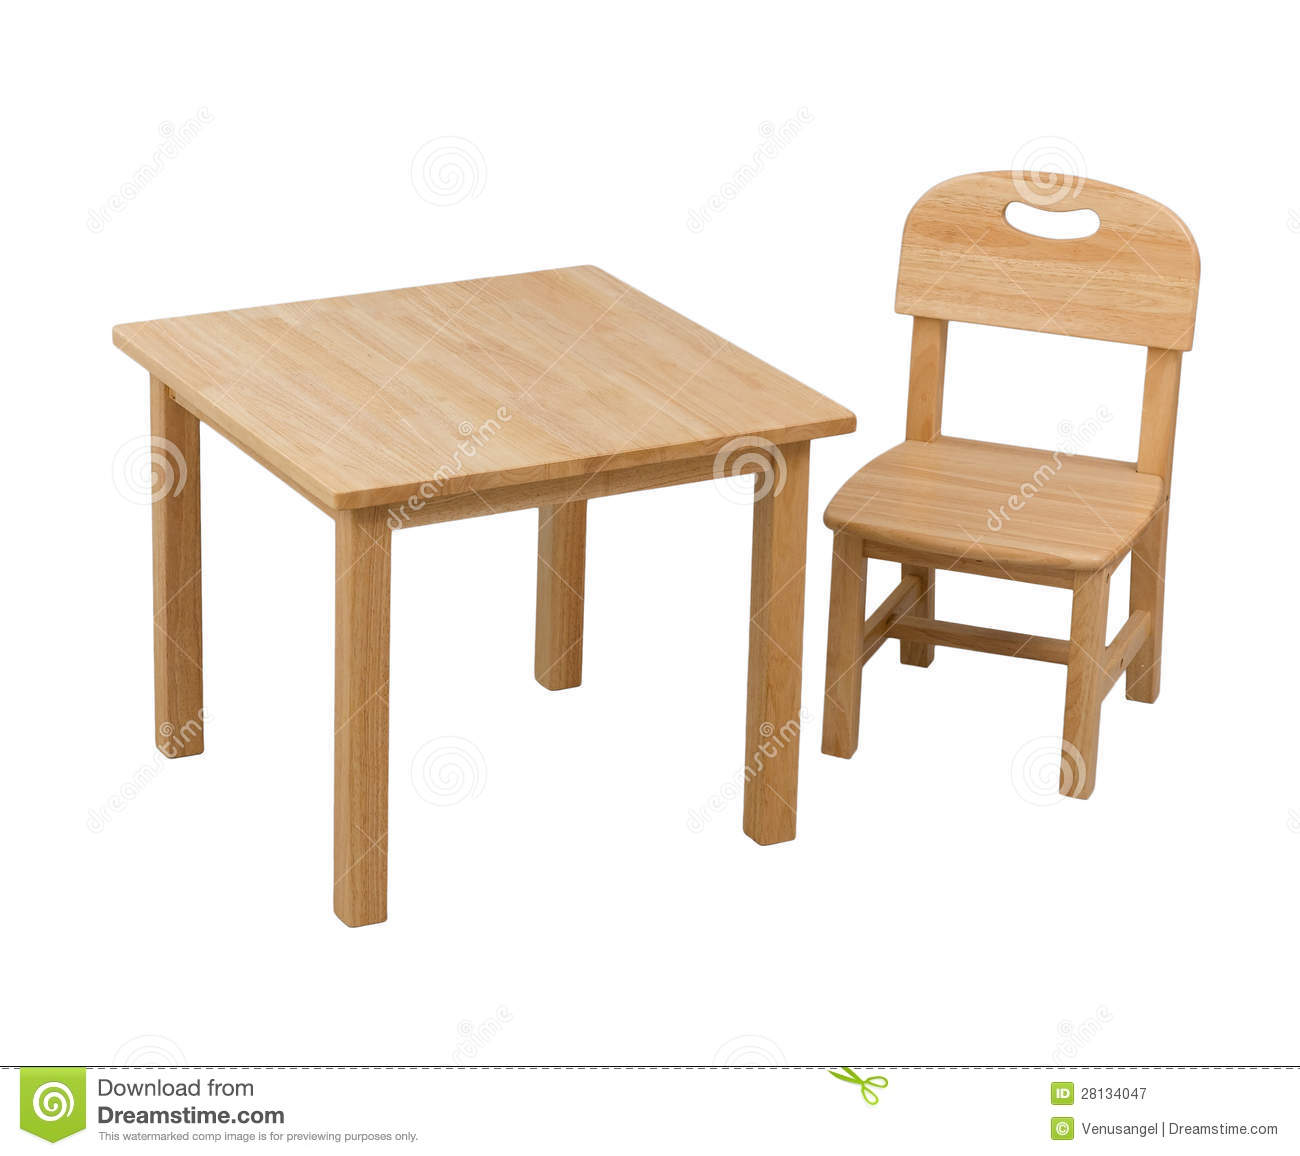 Stupendous Wooden Chair And Desk For Kid Stock Image Image Of Dailytribune Chair Design For Home Dailytribuneorg